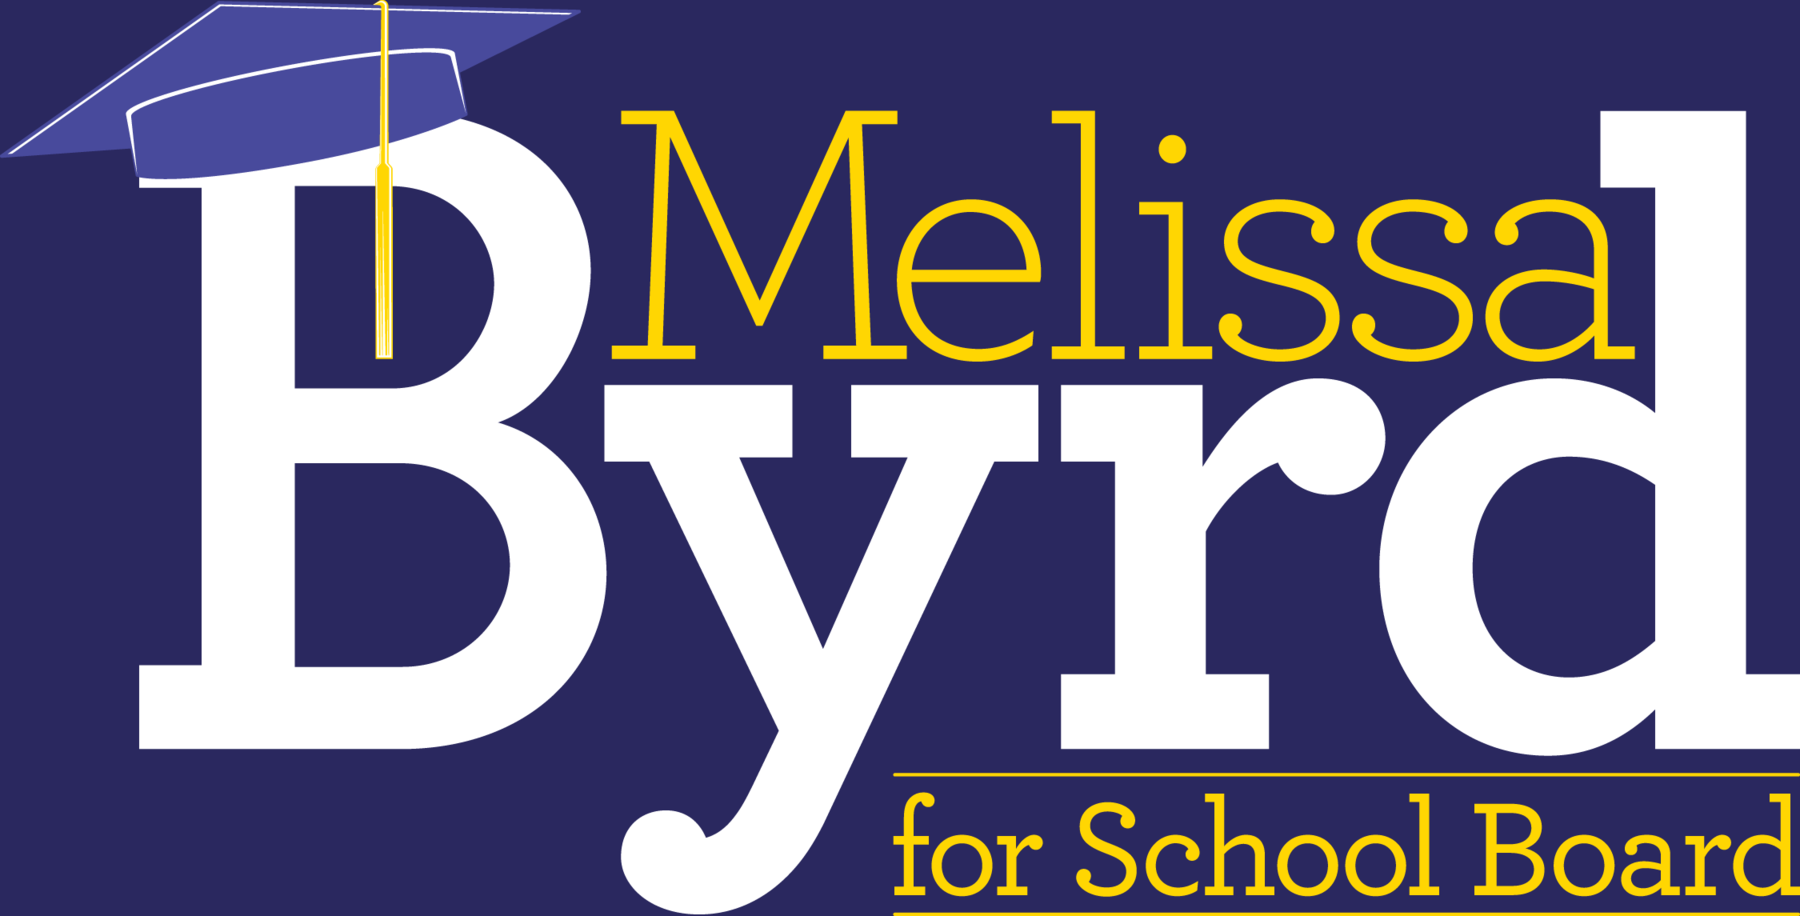 Re-elect Melissa Byrd for School Board: General Fund 2020